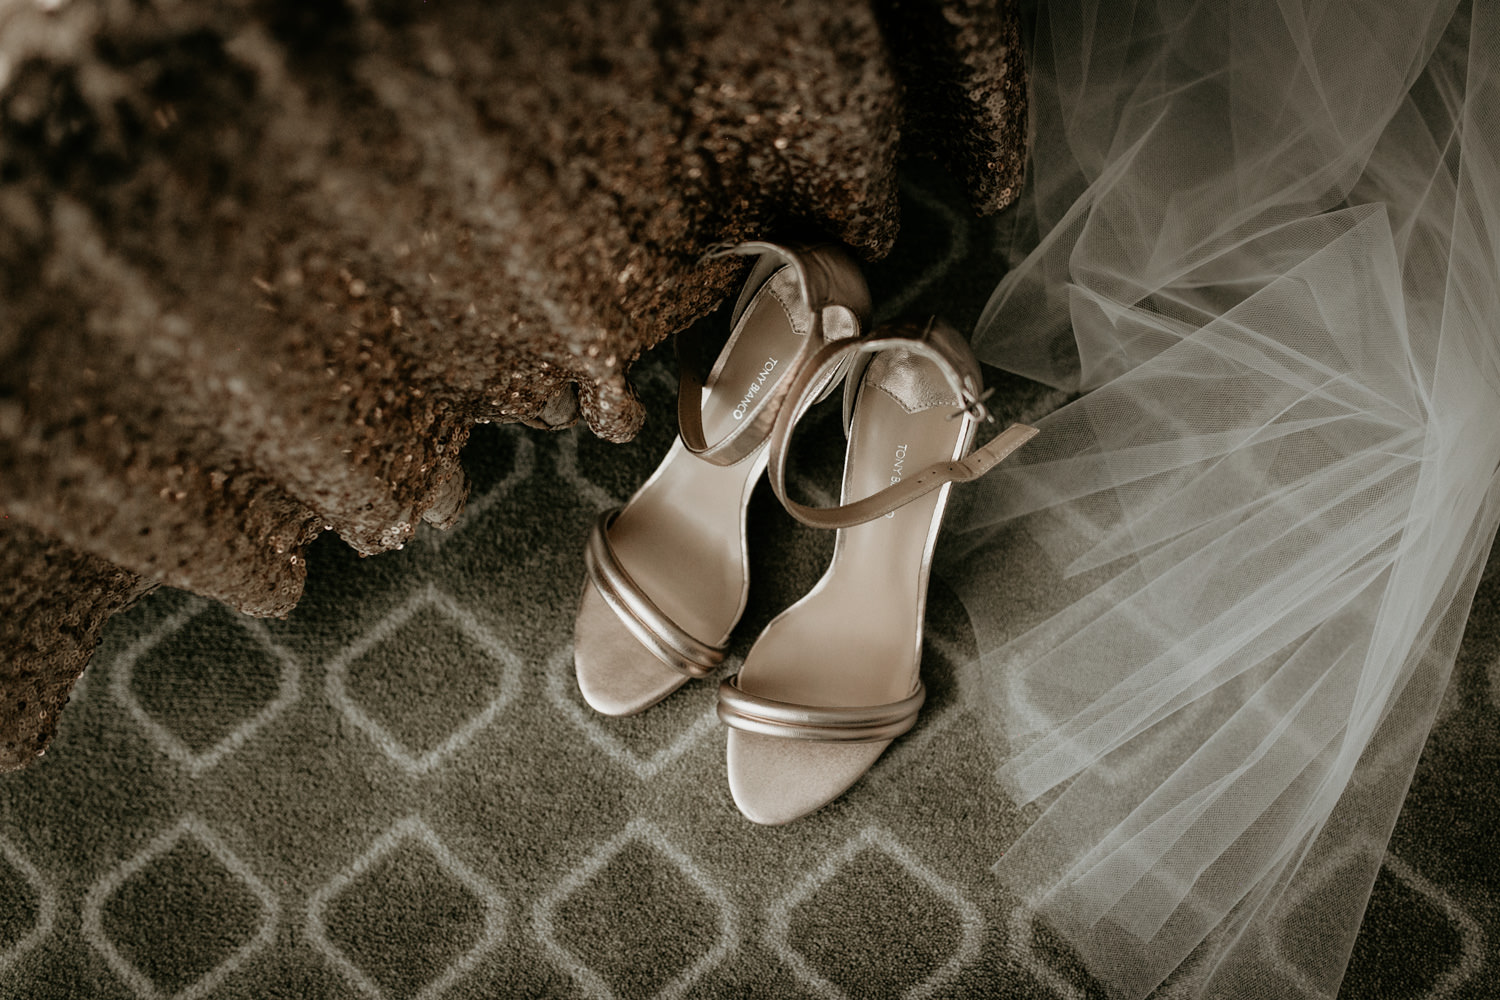 True-North-Photography-Wedding-Details.jpg